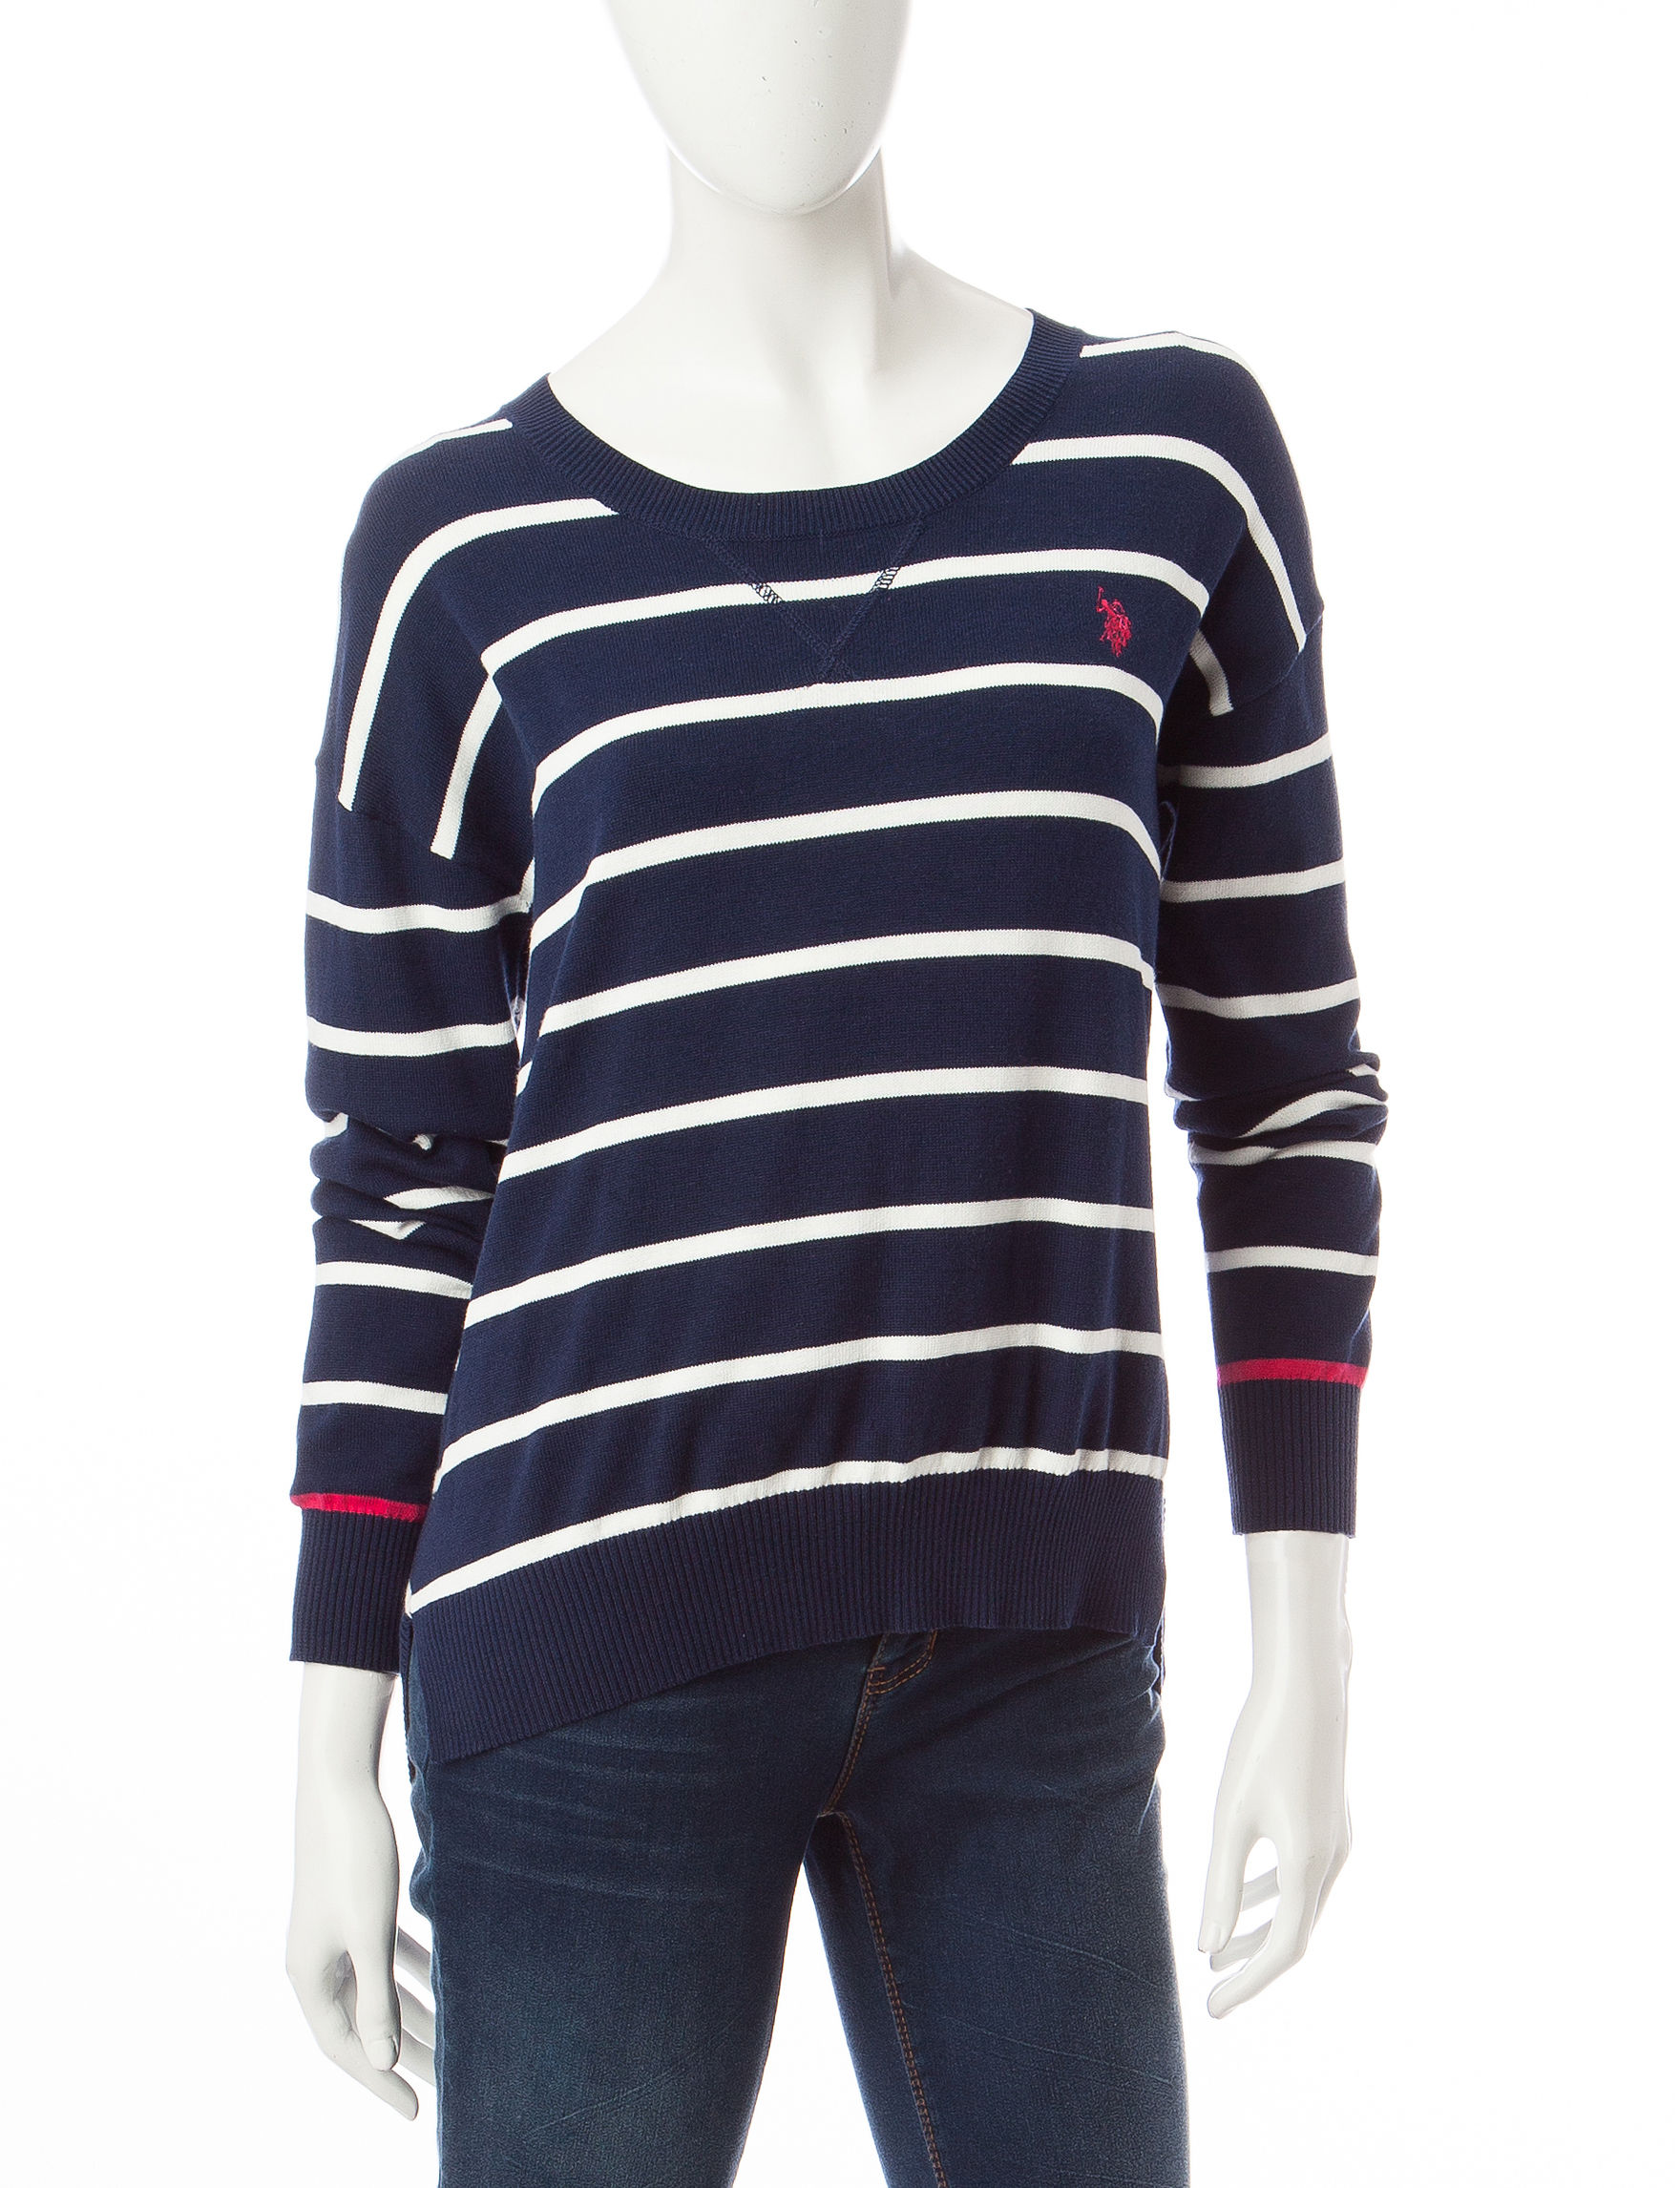 U.S. Polo Assn. Navy Pull-overs Sweaters